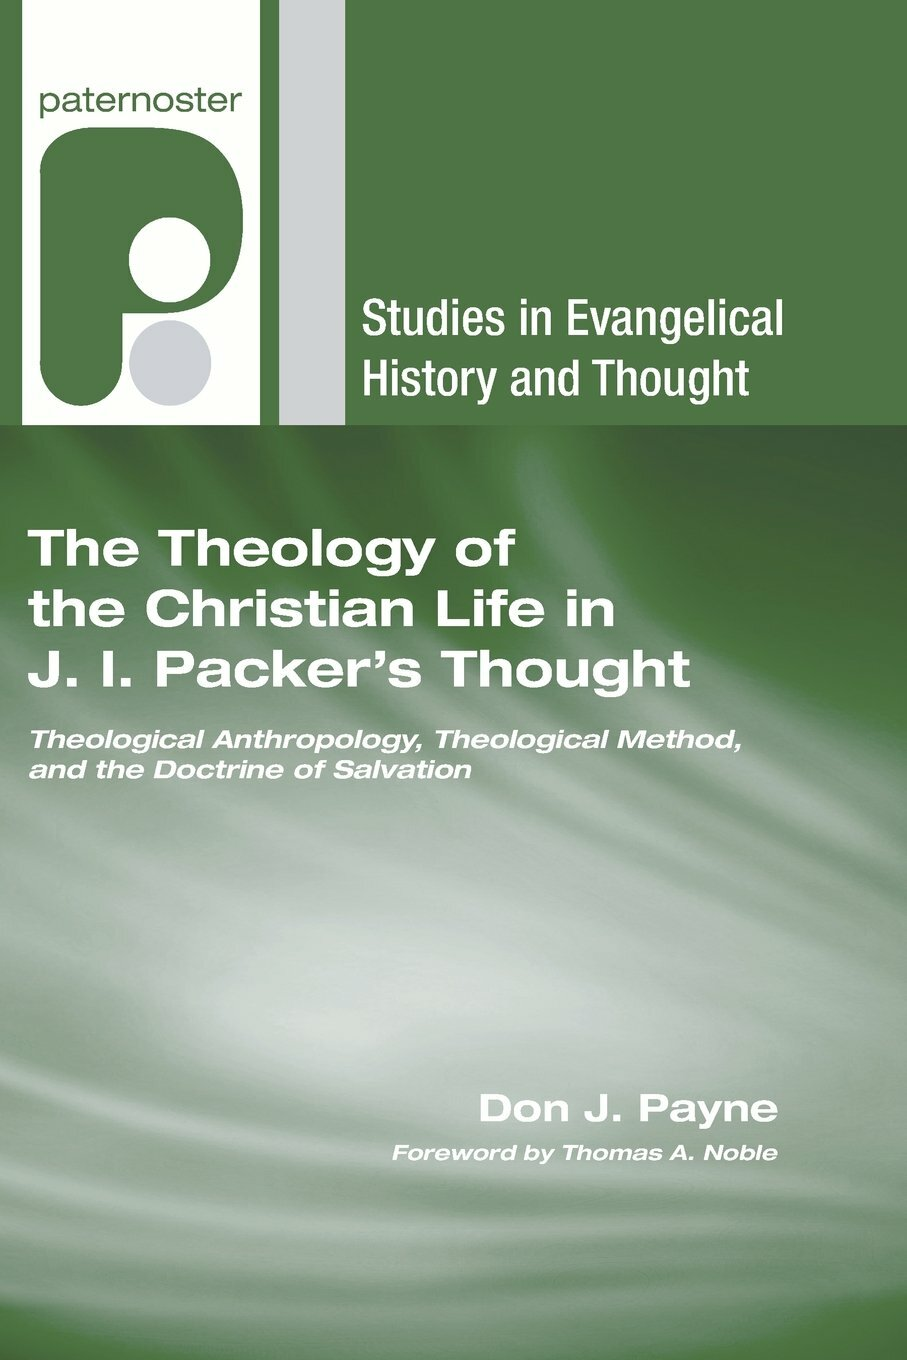 The Theology of the Christian Life in J. I. Packer's Thought